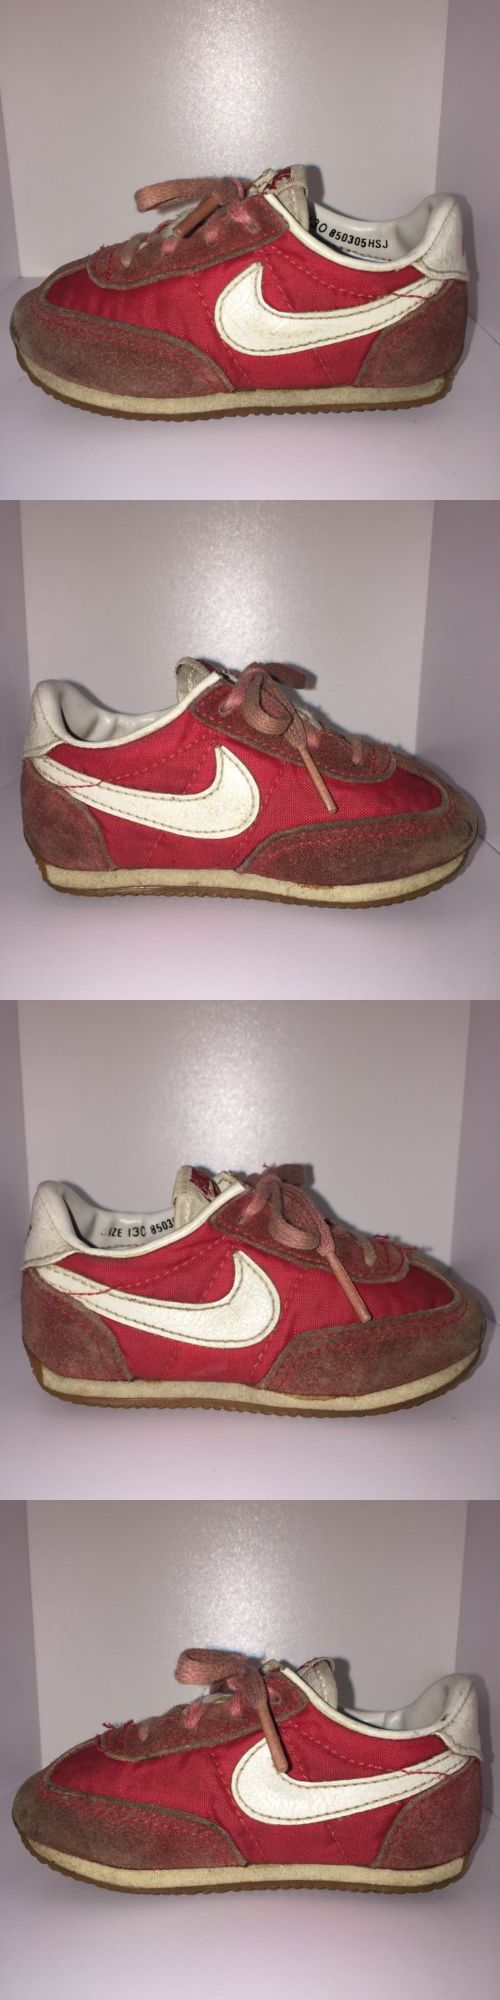 Michael Jordan Baby Clothing: ?? Og 1985 Nike Waffle Forrest Gump Baby Size 3C 3 Awesome Michael Jordan BUY IT NOW ONLY: $34.99